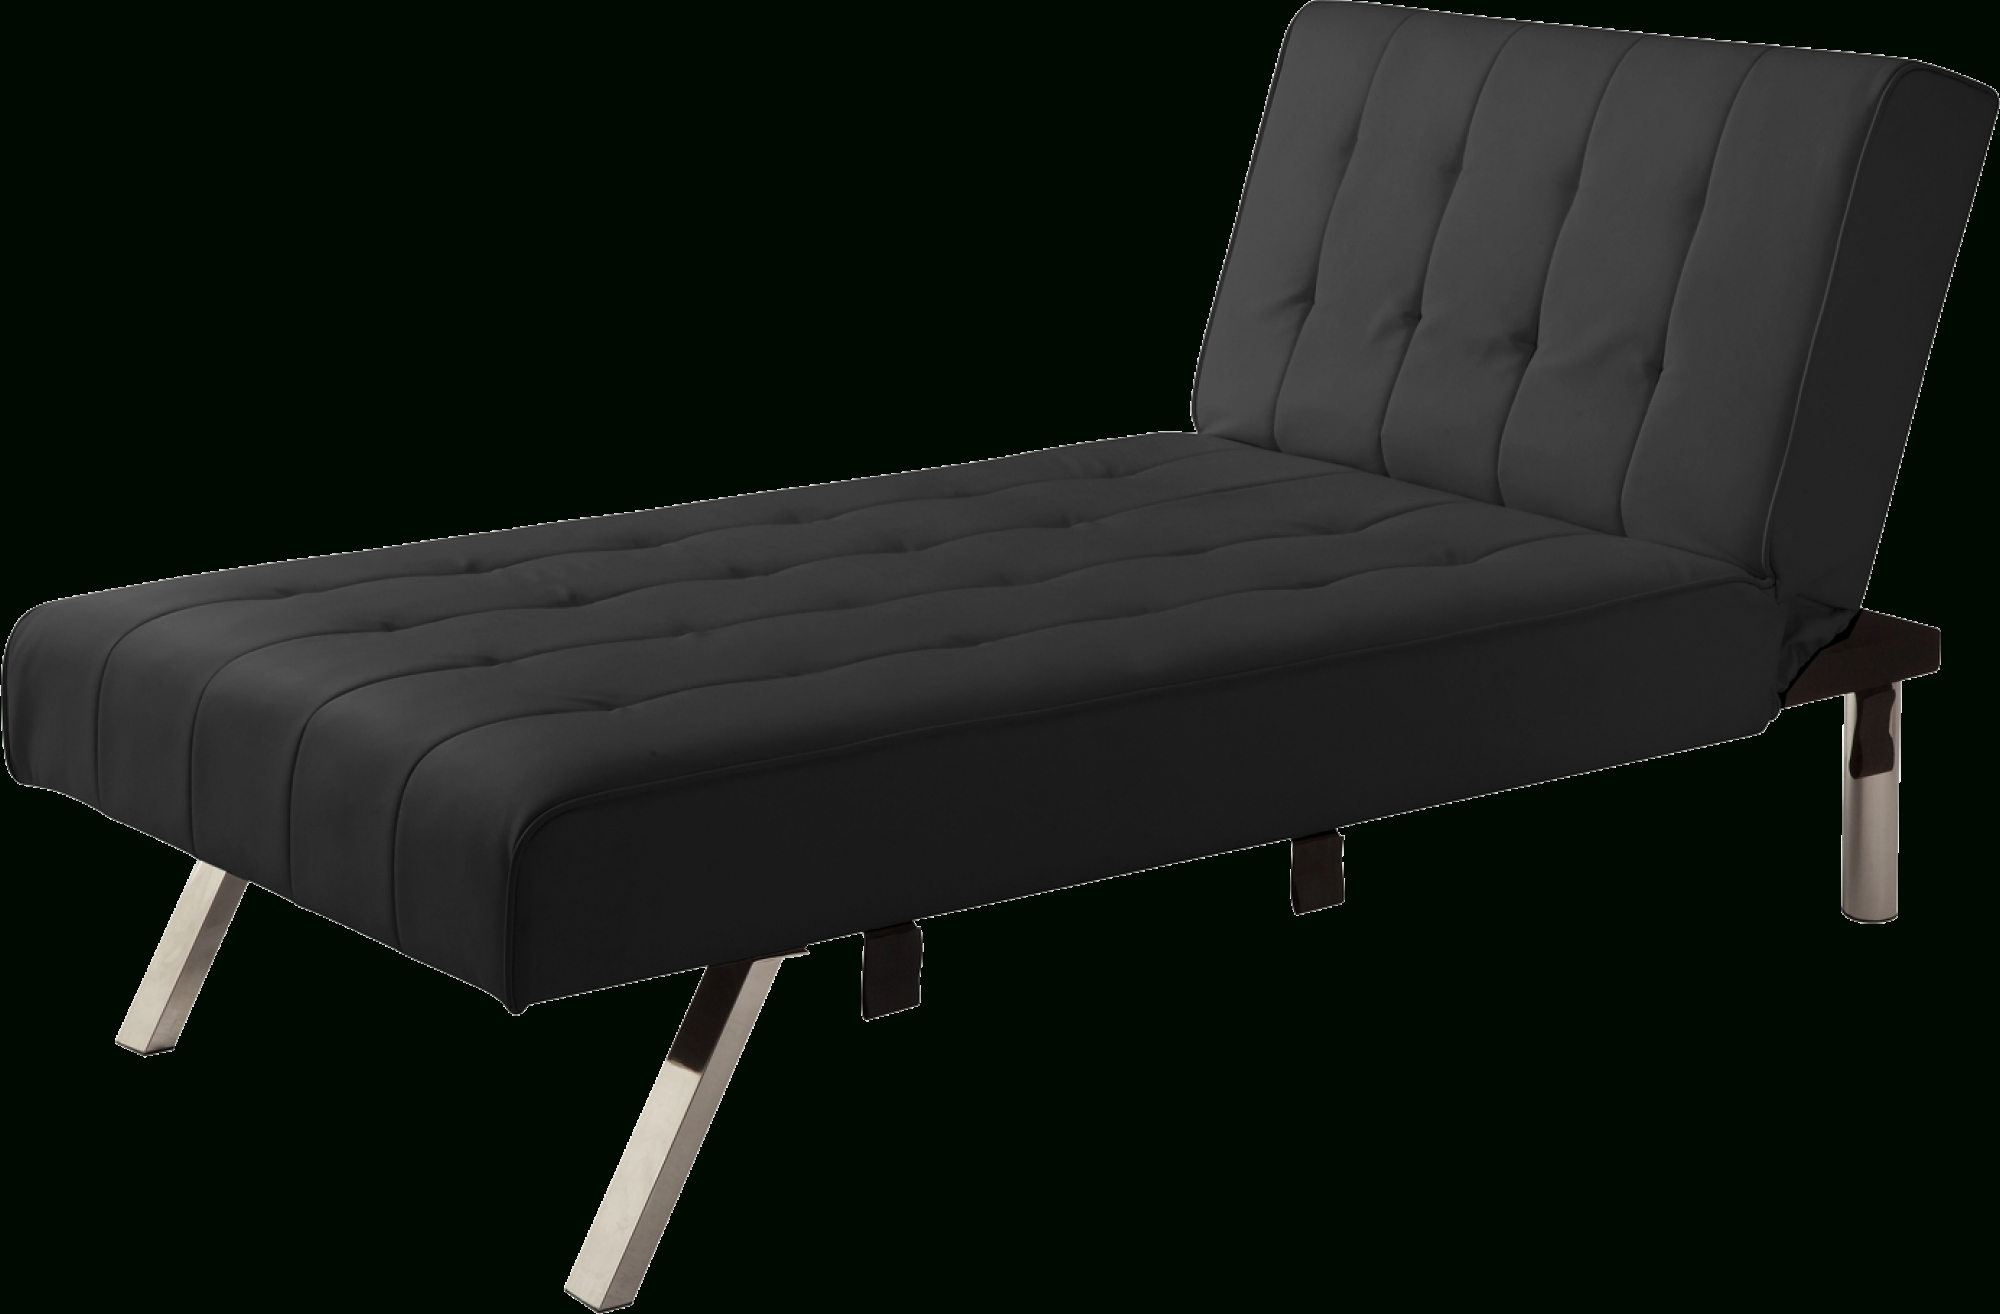 Trendy Emily Futon Chaise Loungers Inside Dhp Emily Futon Chaise Lounger, Multiple Colors – Walmart (View 11 of 15)